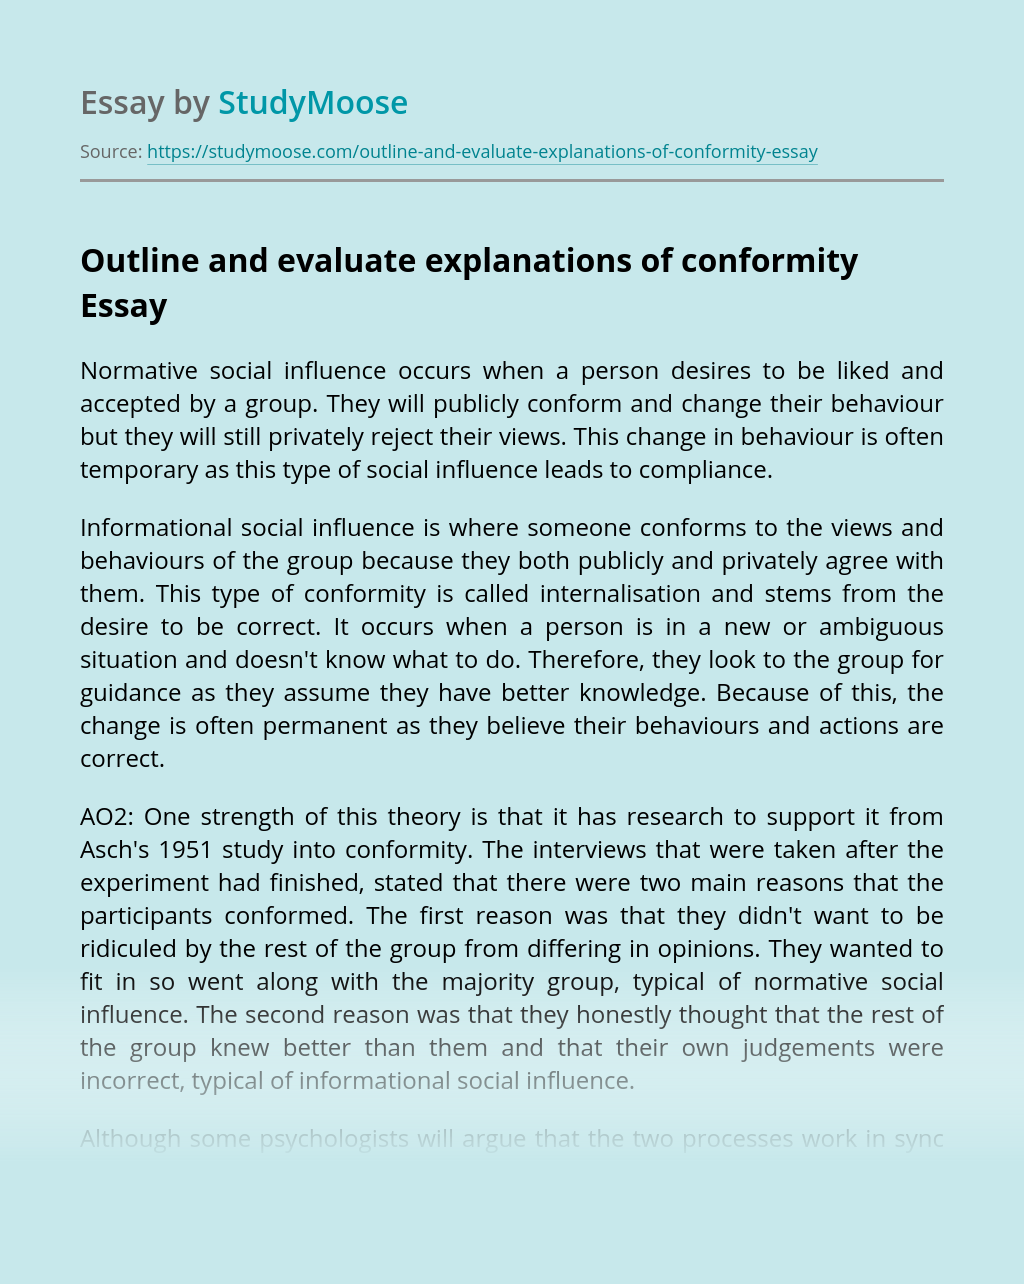 Outline and evaluate explanations of conformity